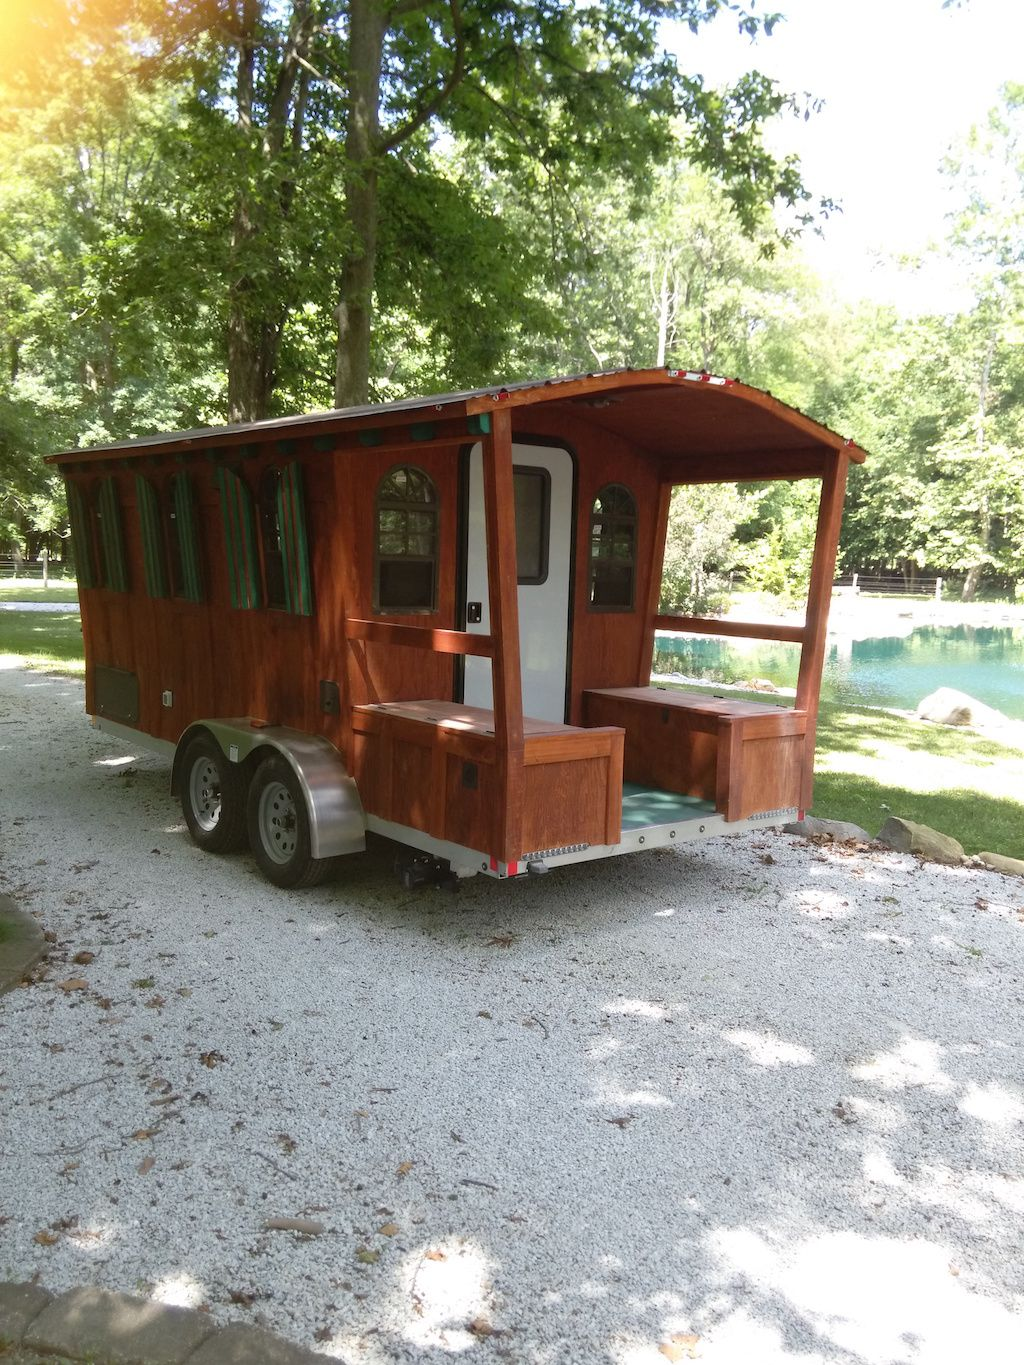 Wooly Wagons Tiny house swoon House on wheels Tiny house o